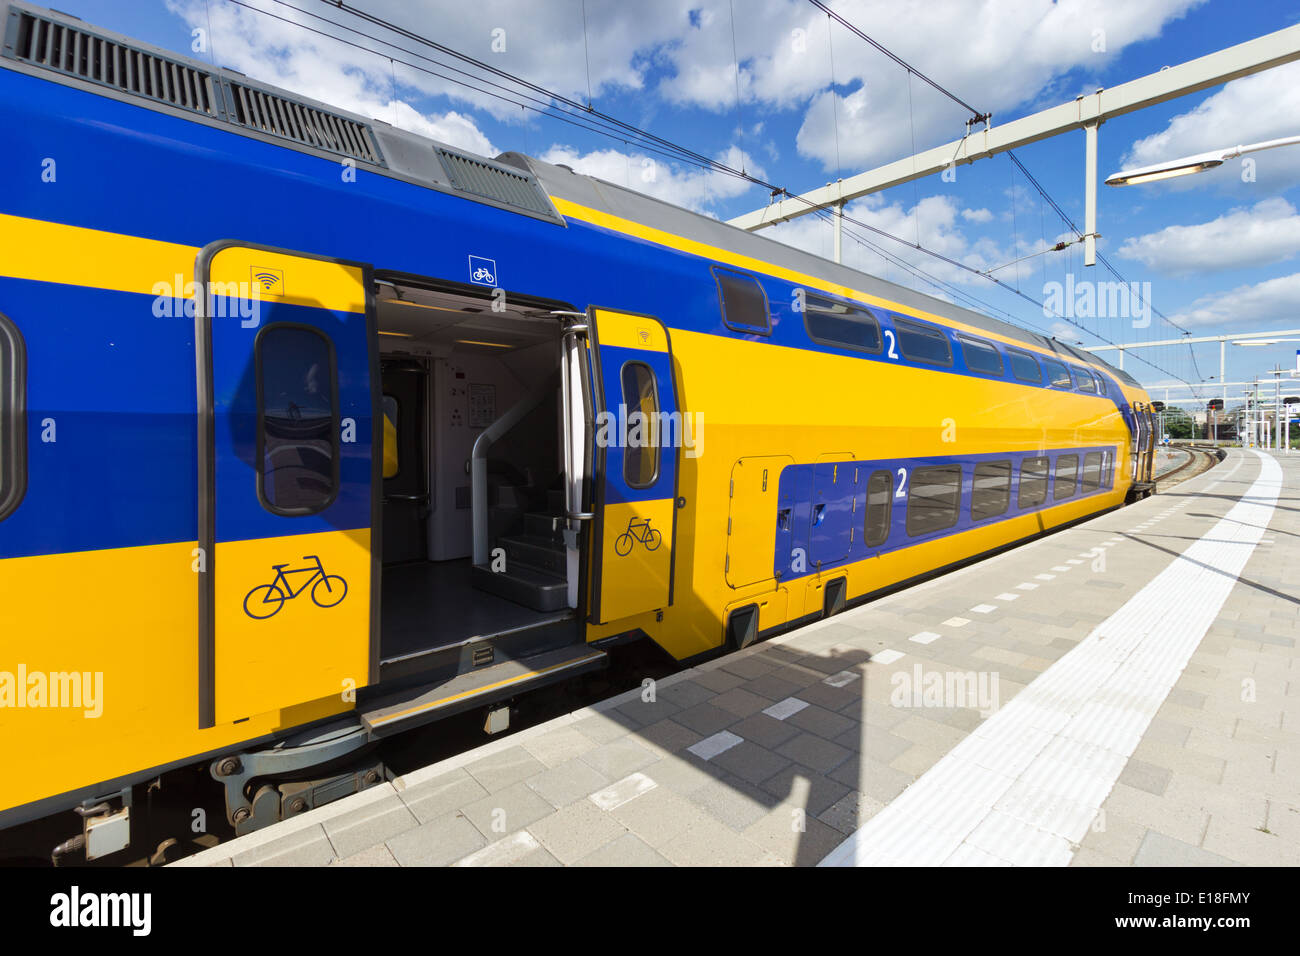 Intercity train in The Netherlands - Stock Image